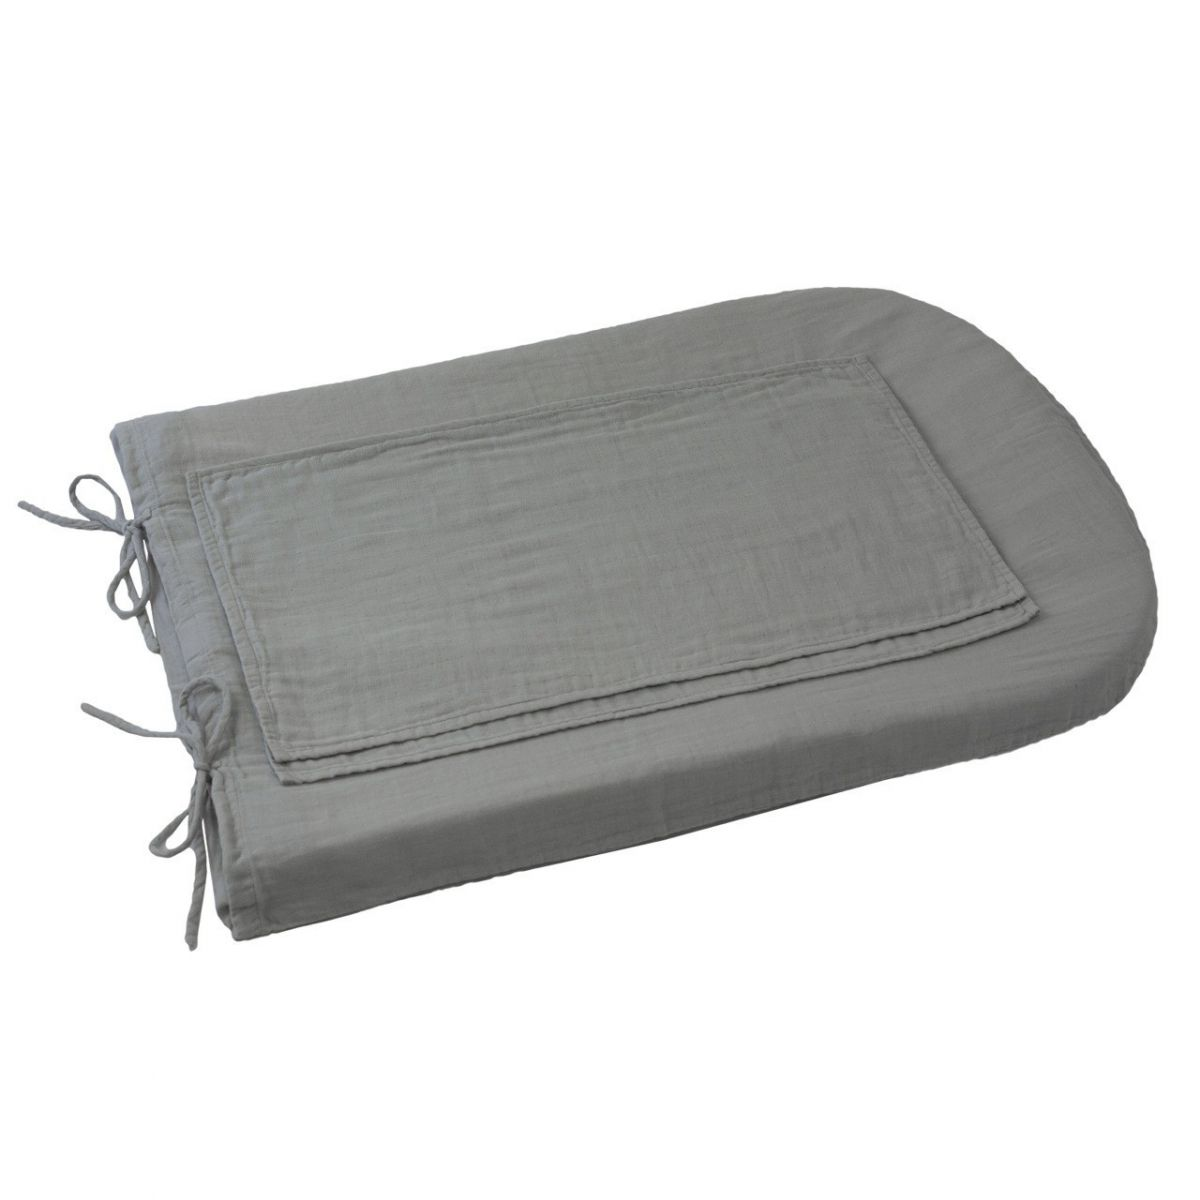 Changing Pad cover round silver grey - Numero 74